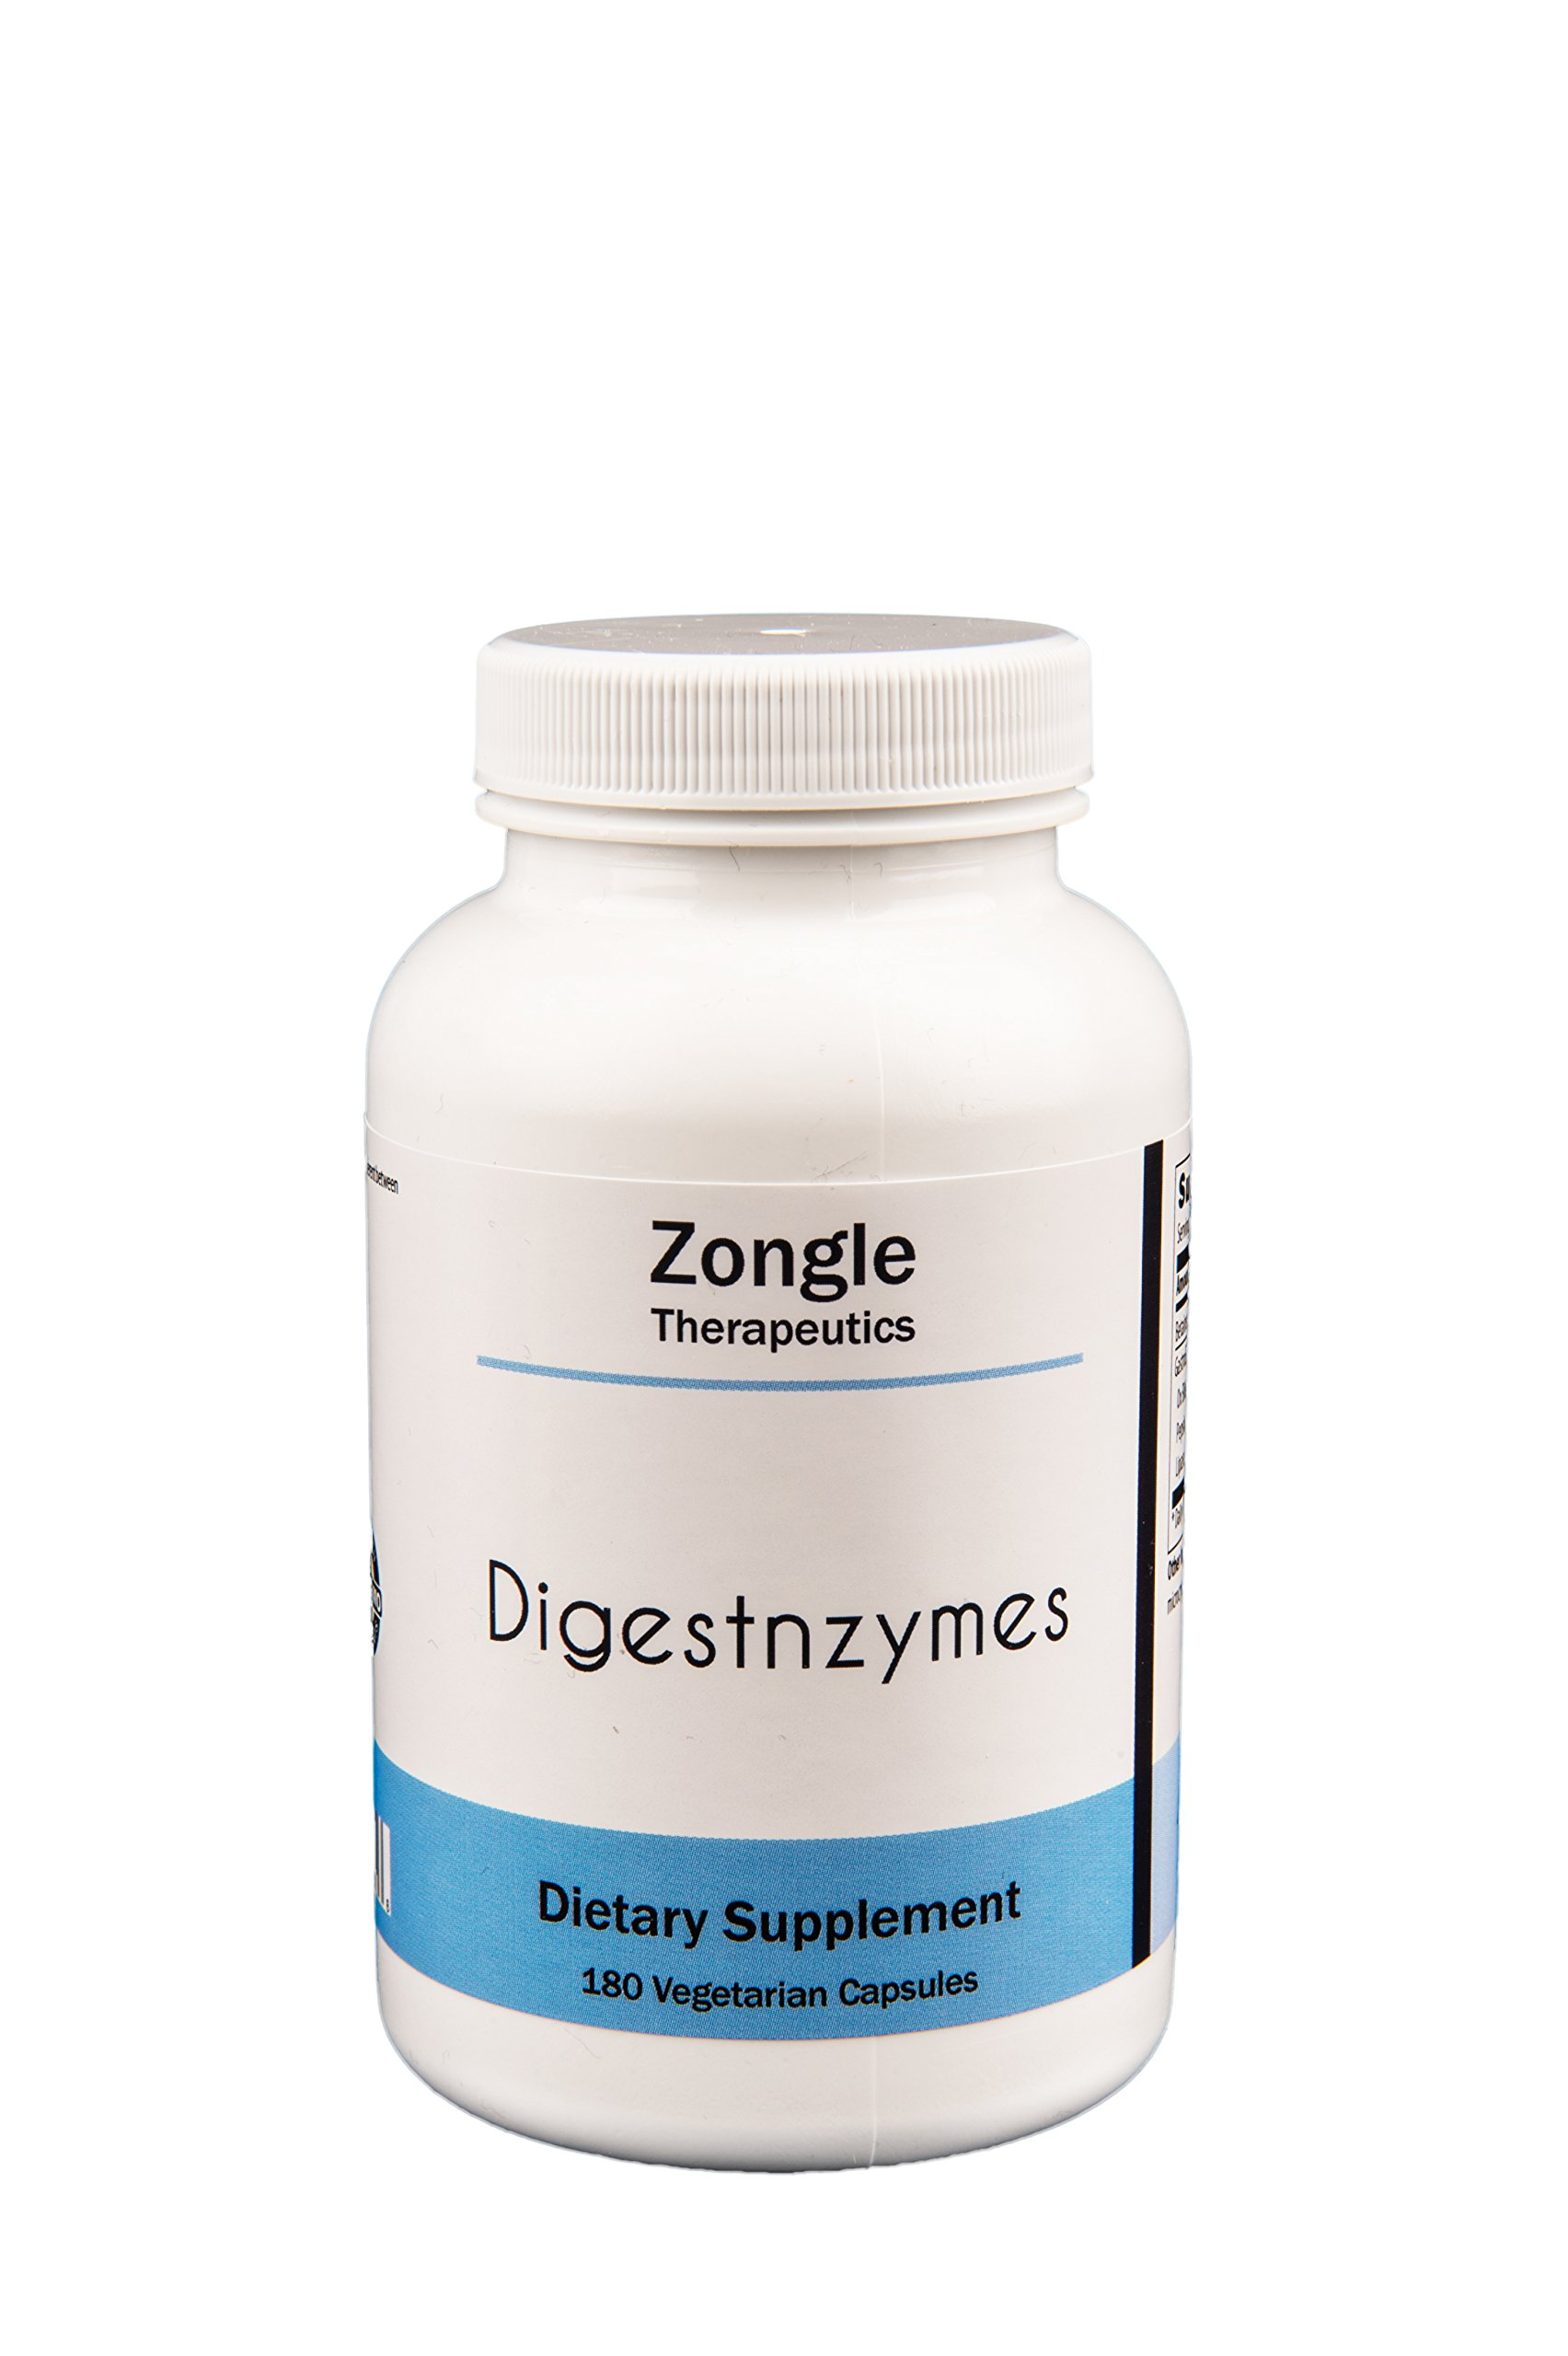 Zongle Therapeutics - Digestnzymes - 180 Vegetarian Caps - Betaine HCL, Peptidase, Pepsin, Protease, Lactase and more